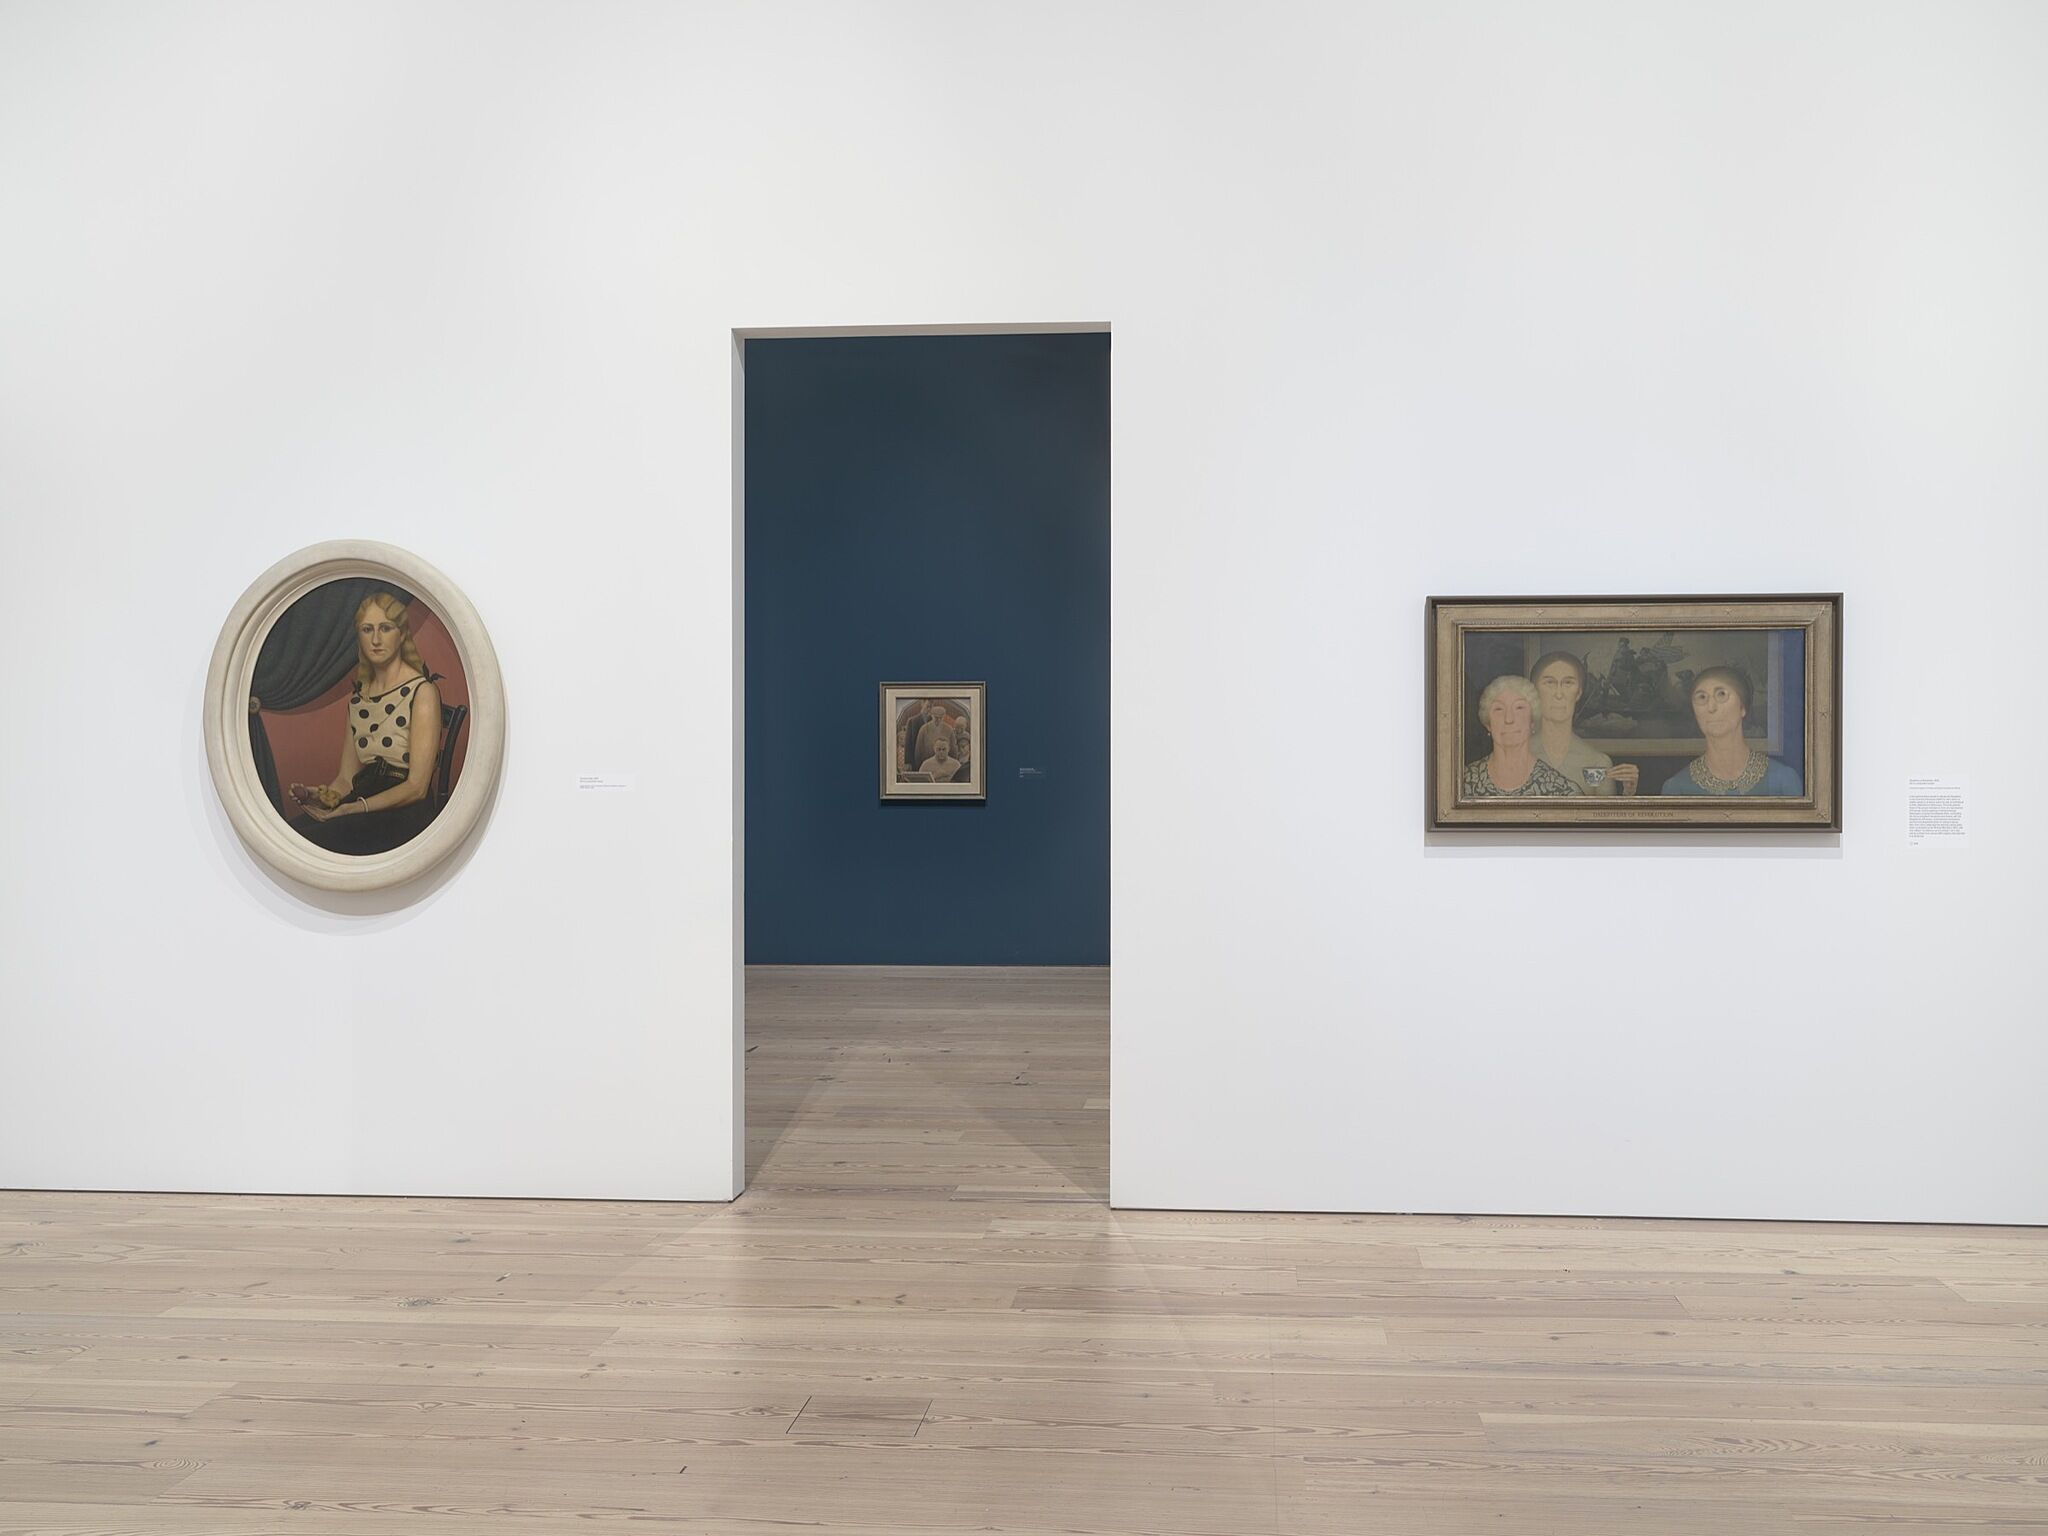 Three paintings in a gallery space.